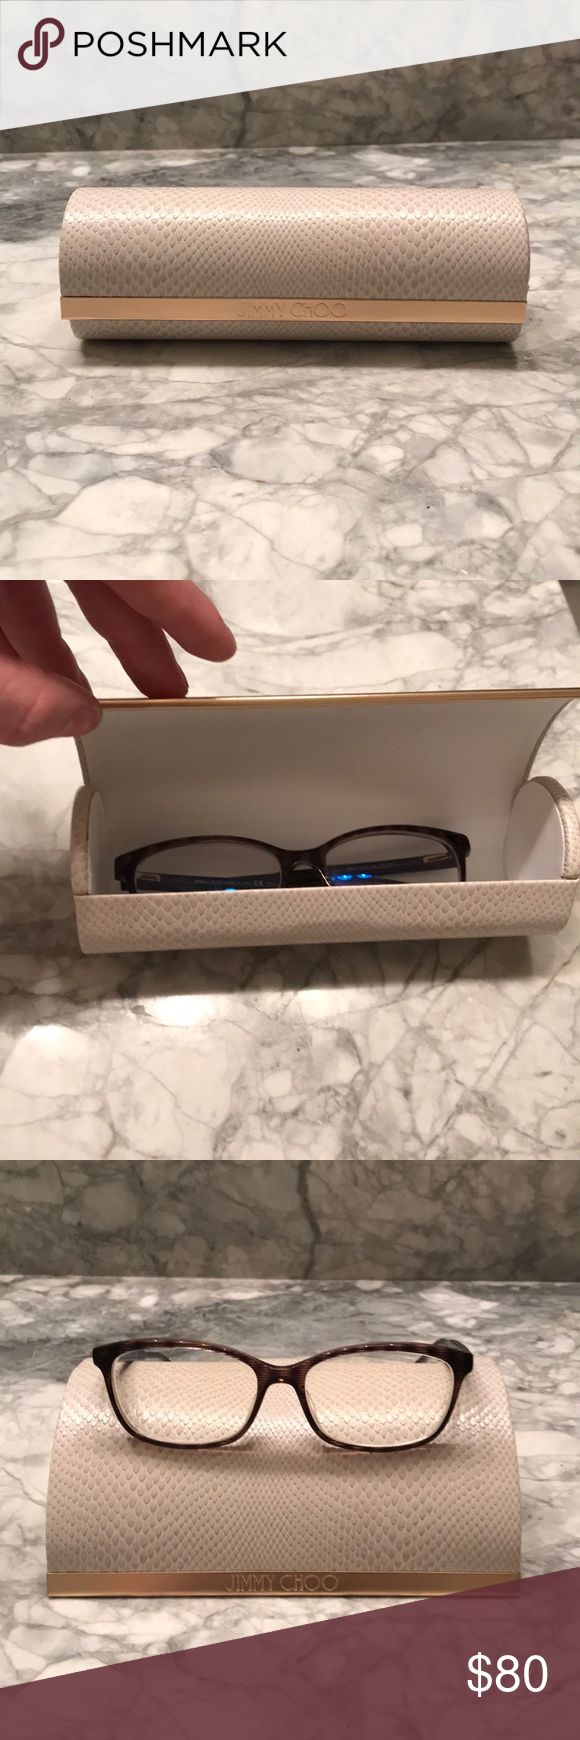 SALE - Jimmy Choo Glasses Only worn a few times before I got LASIK. You can replace the lenses with your own prescription lenses. Marking down over 75% from what I paid. I am moving at the end of this week and must downsize as much as possible. MAKE ME AND OFFER.   *Comes with original case and will throw in any item $10 or under from my closet for free** Will ship same day if ordered before 12pm and next day if after. Jimmy Choo Accessories Glasses